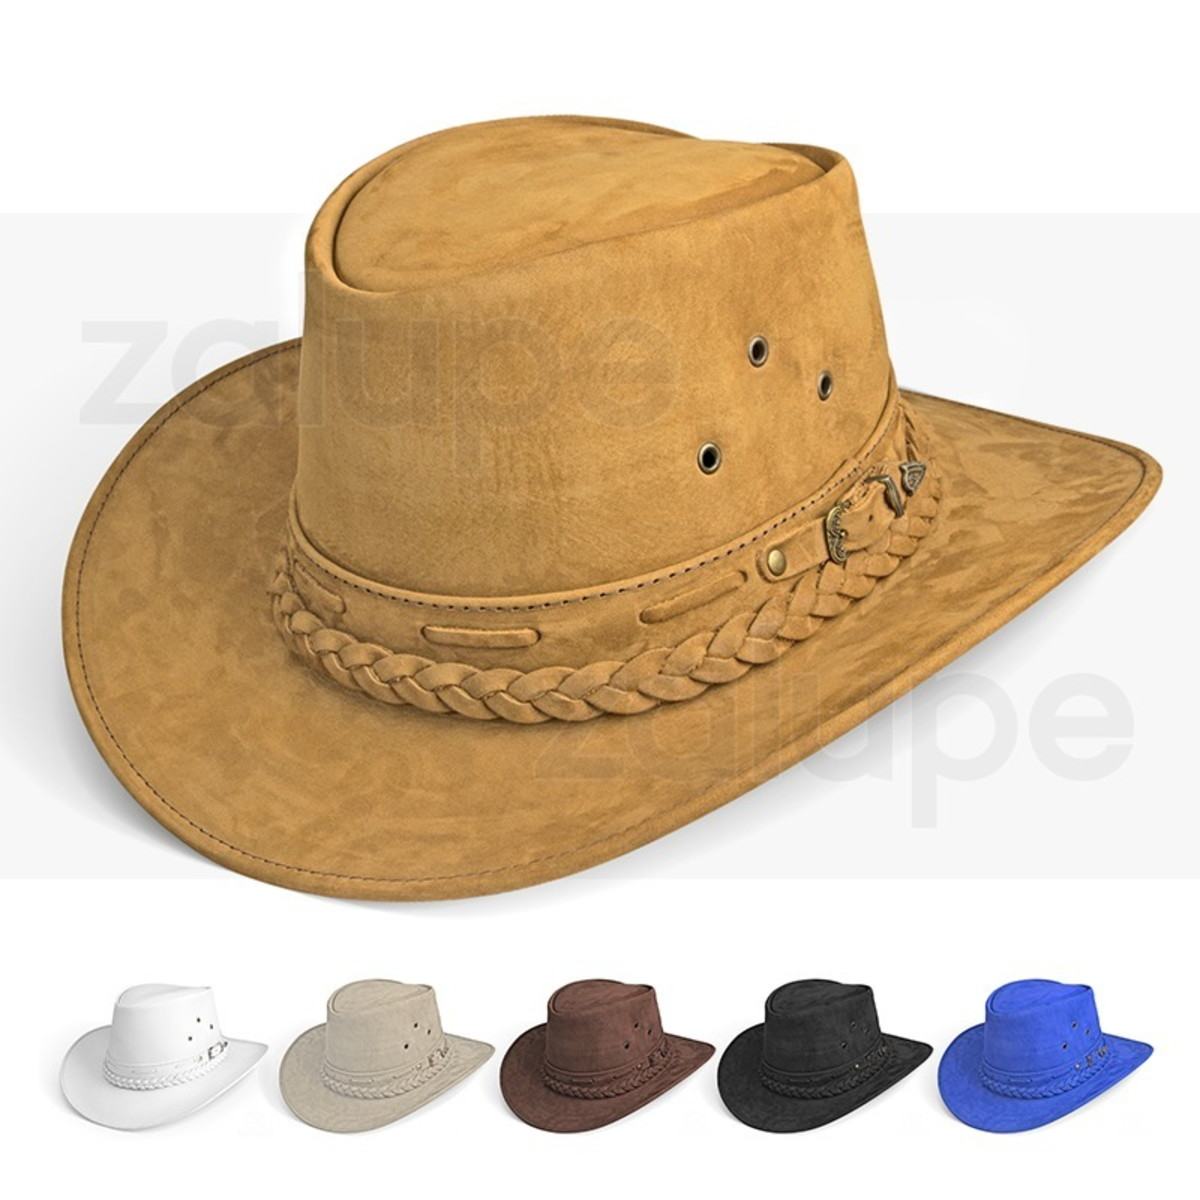 d9c5876de27f1 Zoom · Chapeu Couro Country Australiano Texano Rodeio Bege Unissex chapeu- couro-country-australiano-texano-rodeio-bege-unissex-chapeu-masculino